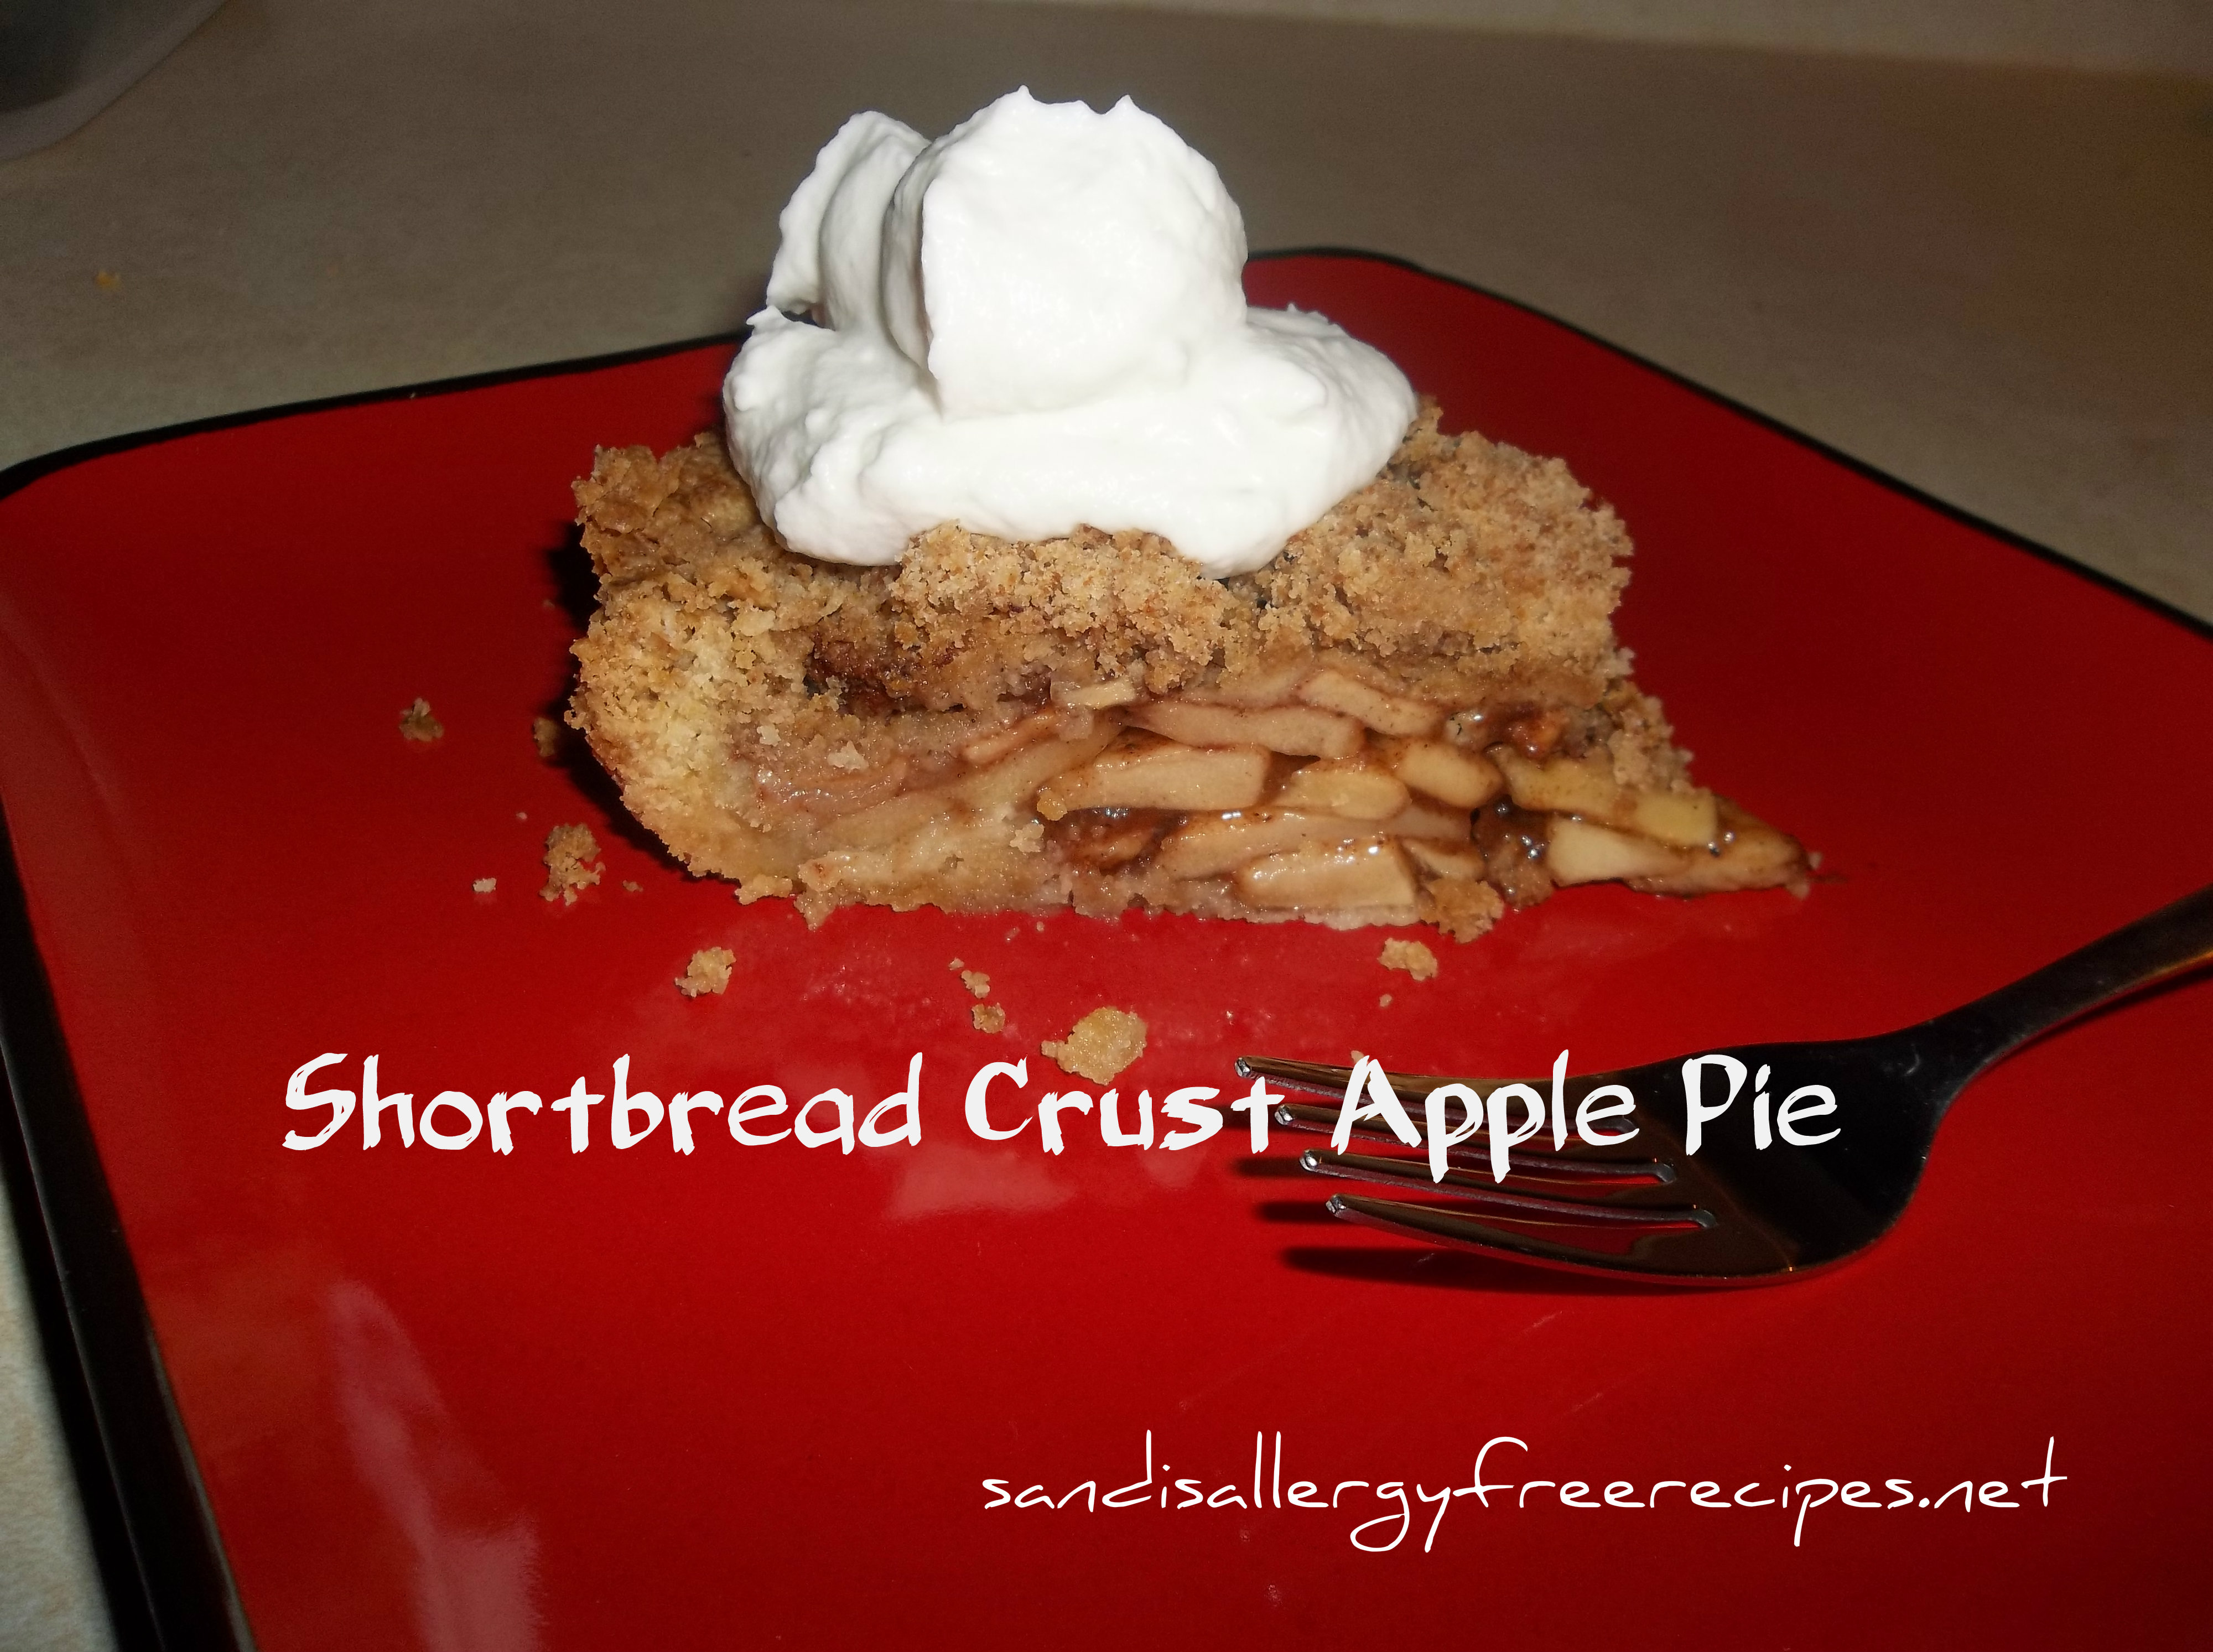 Apple Pie With Short Bead Crust (Gluten Free/ Dairy Free/ Vegan ...